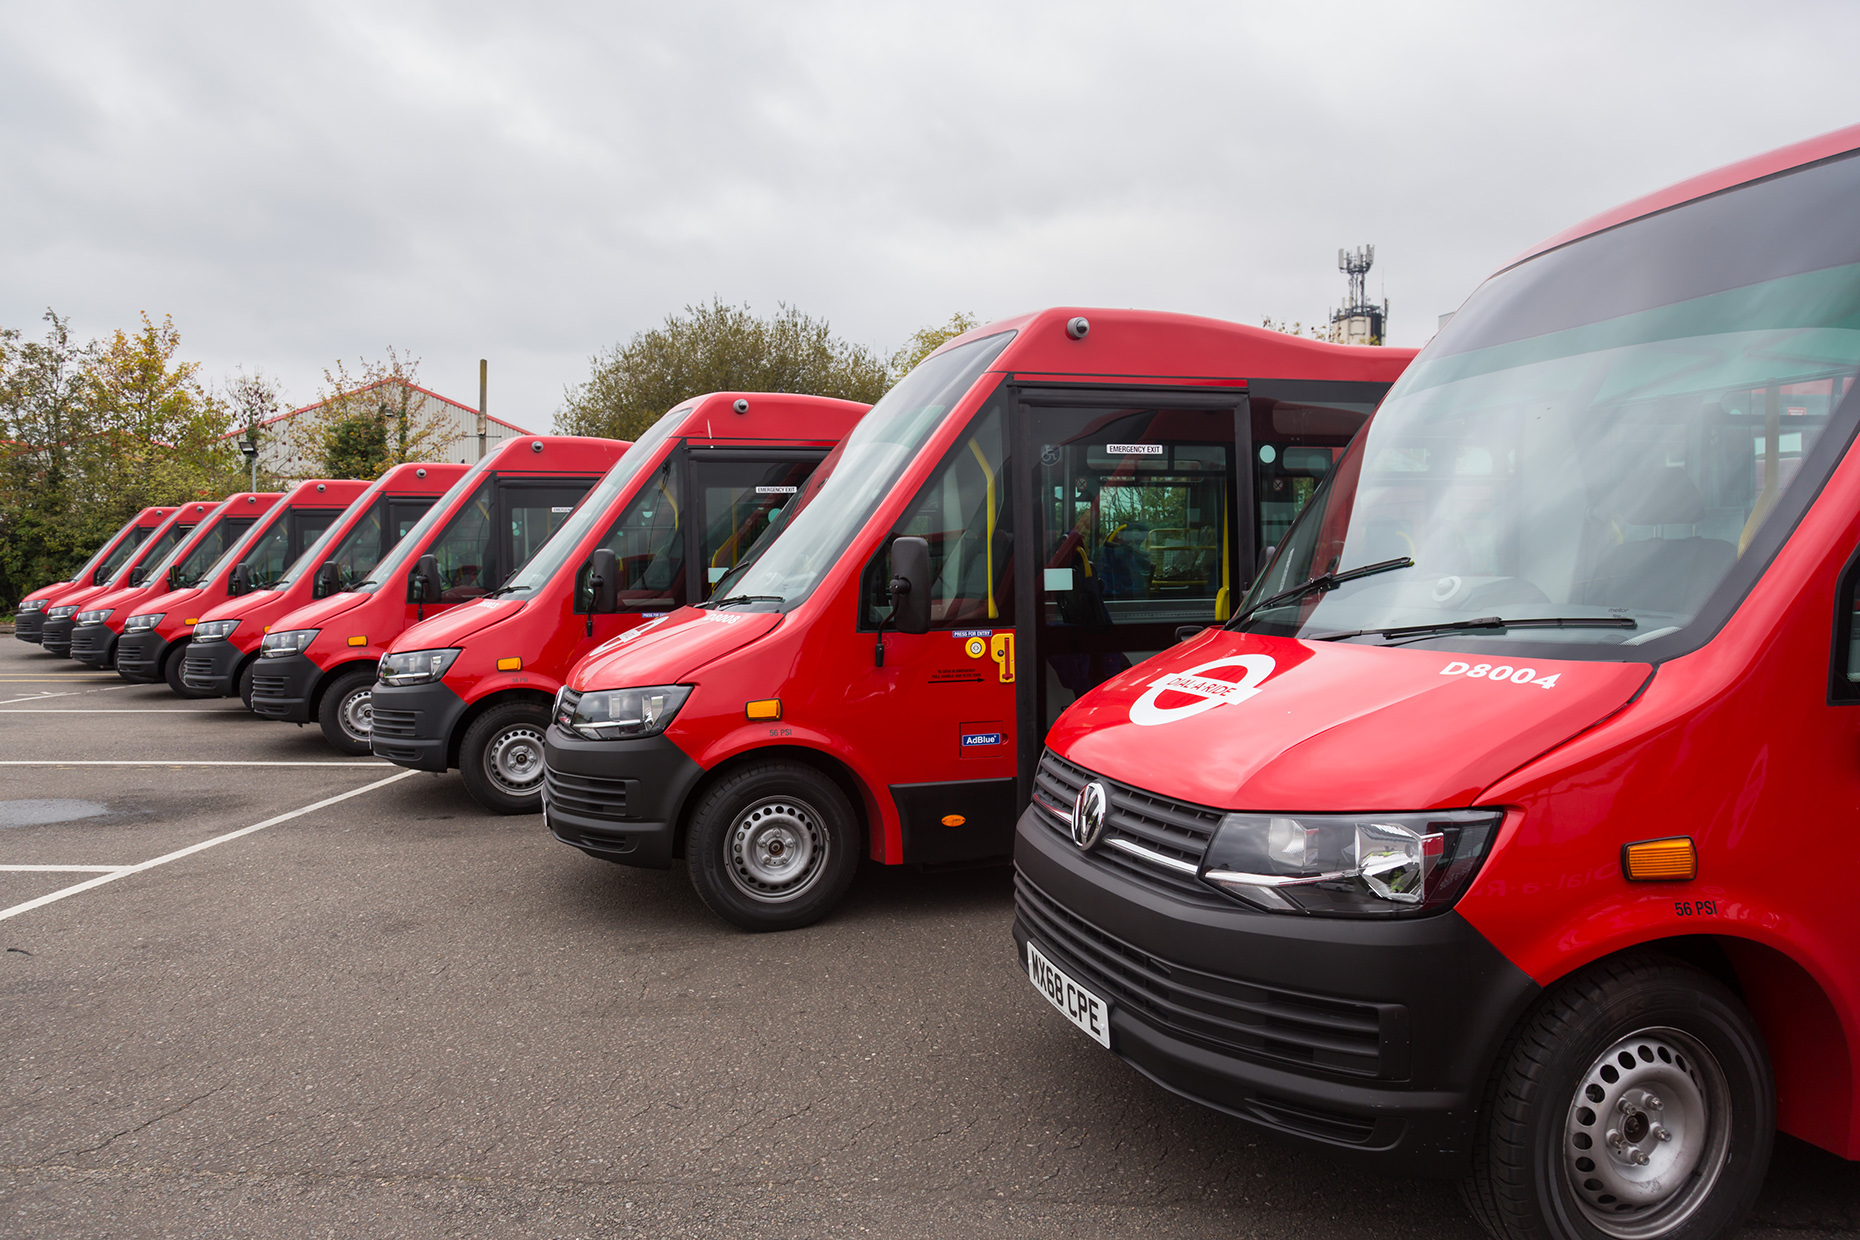 TfL orders 90 Mellor Tucana II buses for London Dial-a-Ride